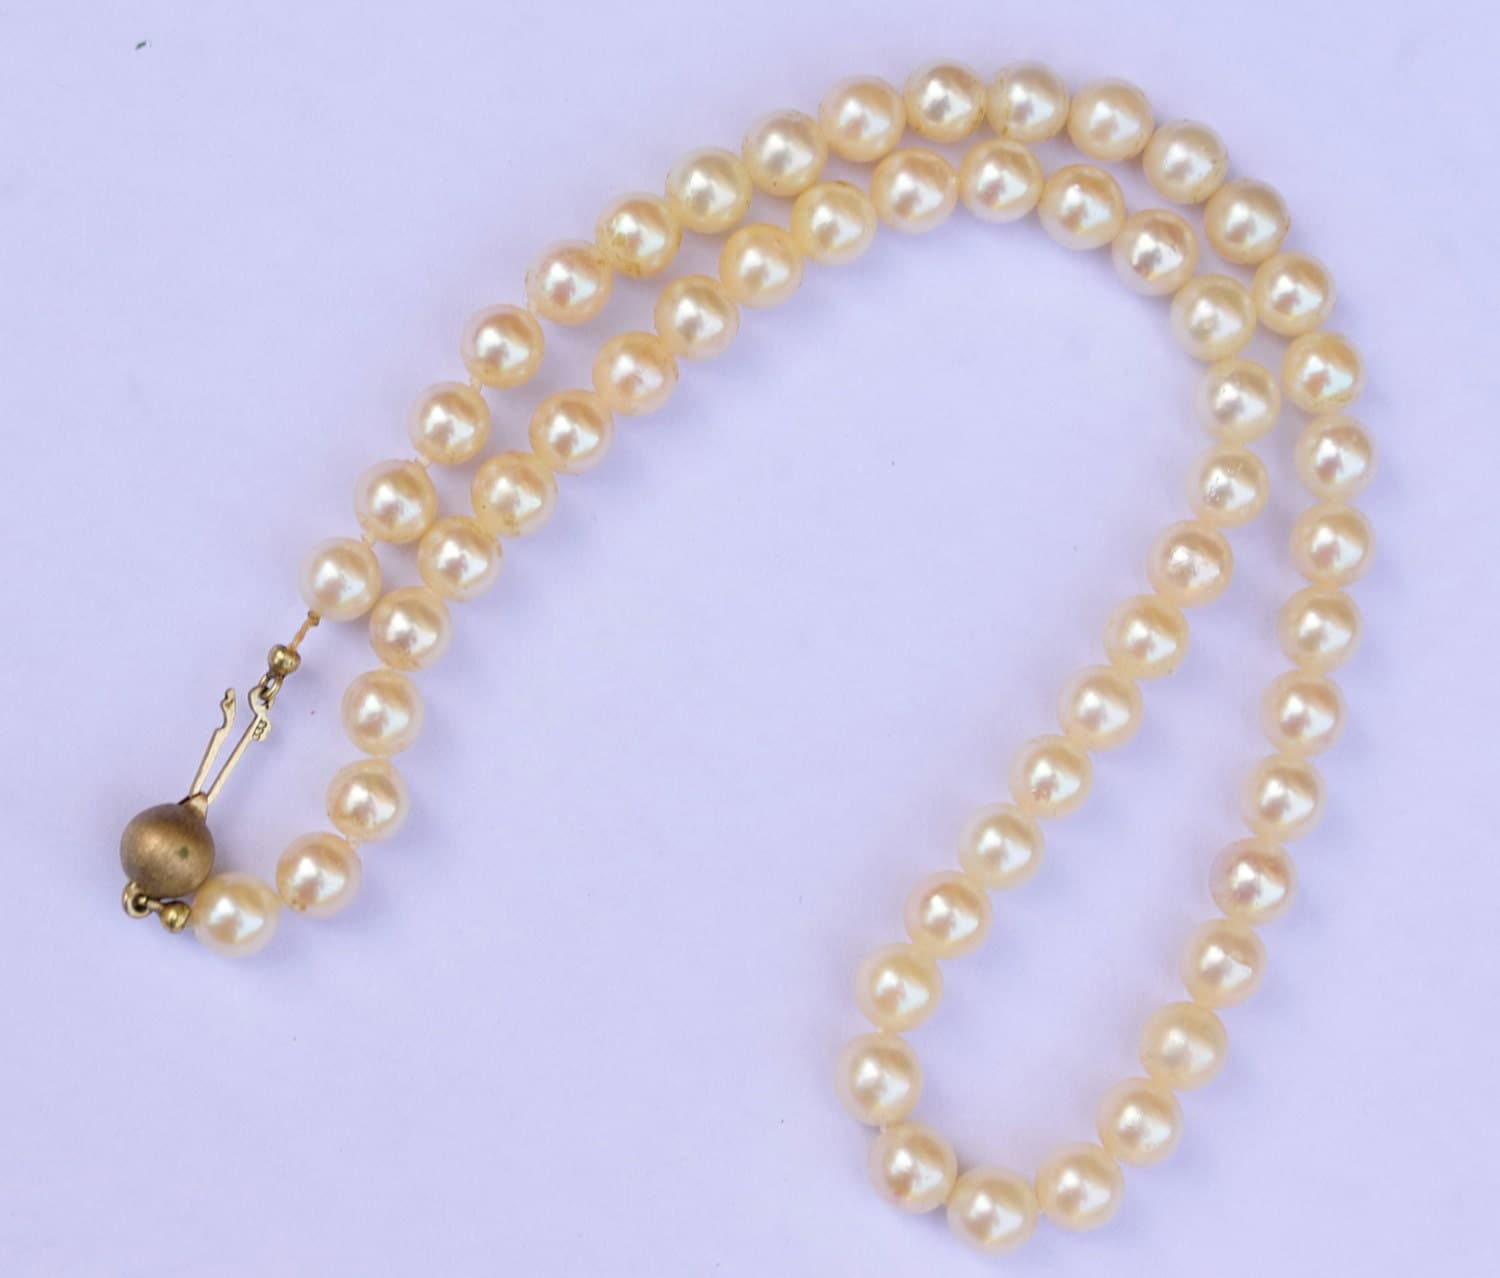 Vintage Pearl Choker Necklace: Vintage Pearl Necklace With 9c Gold Clasp / Vintage Pearls